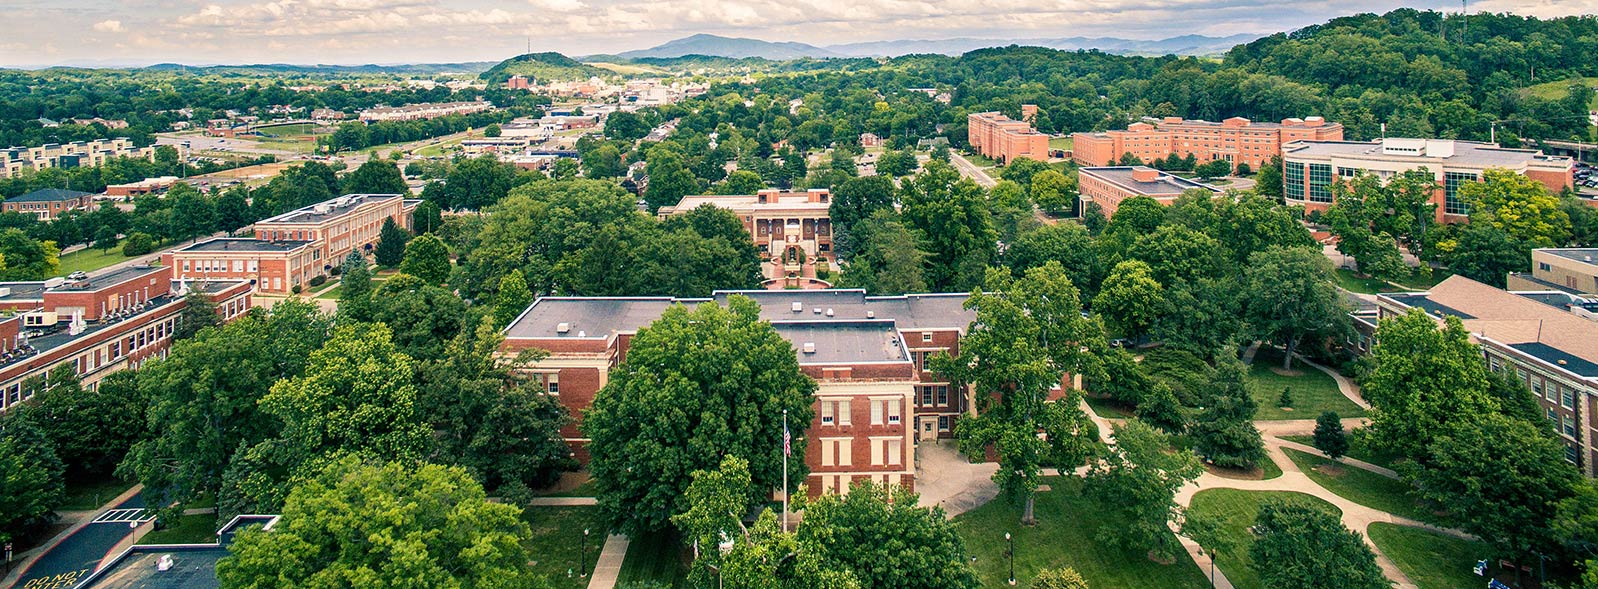 aerial view of ETSU campus